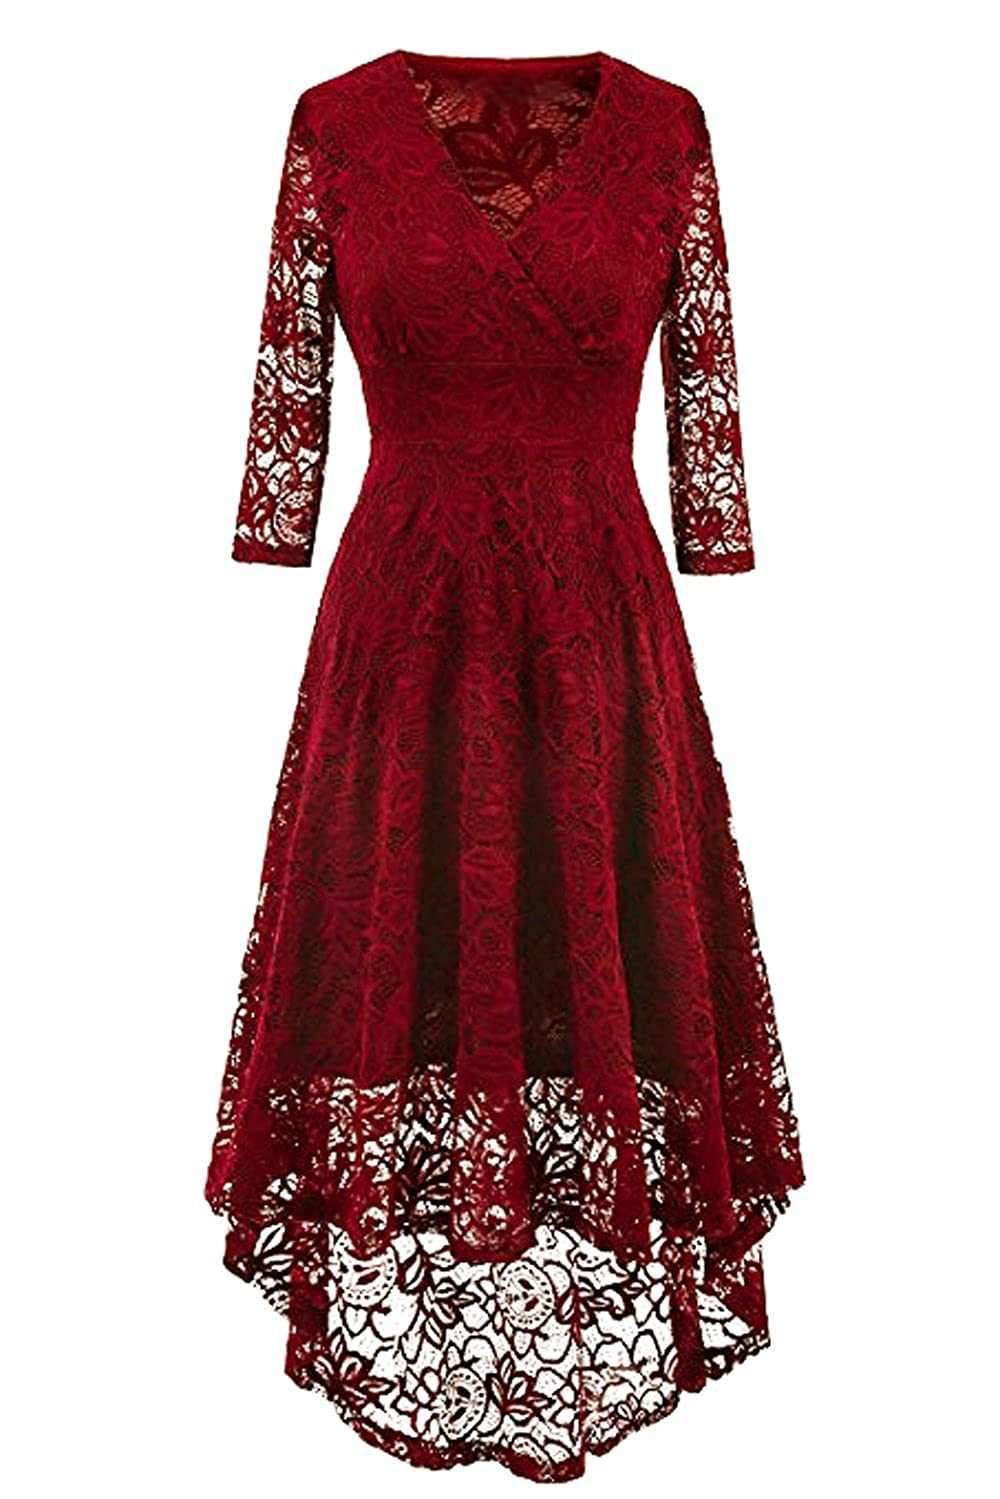 NALATI Women Vintage Beautiful 50's Retro Floral lace Fabric Swing Dress with 3/4 Long Sleeve Deep V Neck High Waist High-Low Hip Lace Party Cocktail Midi Dress